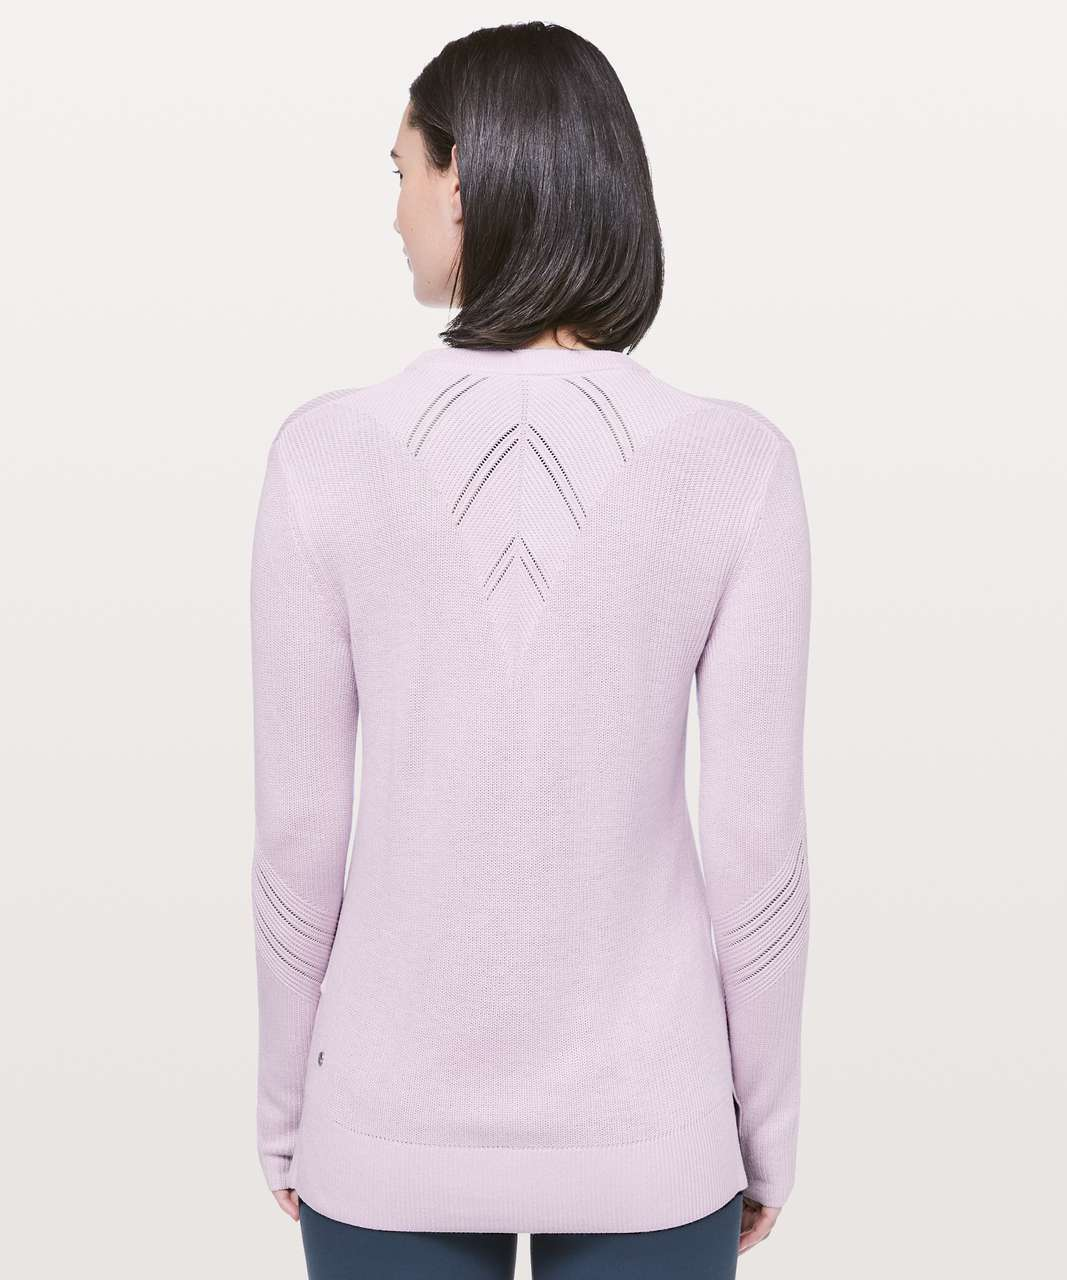 Lululemon Time To Restore Sweater - Sheer Lilac